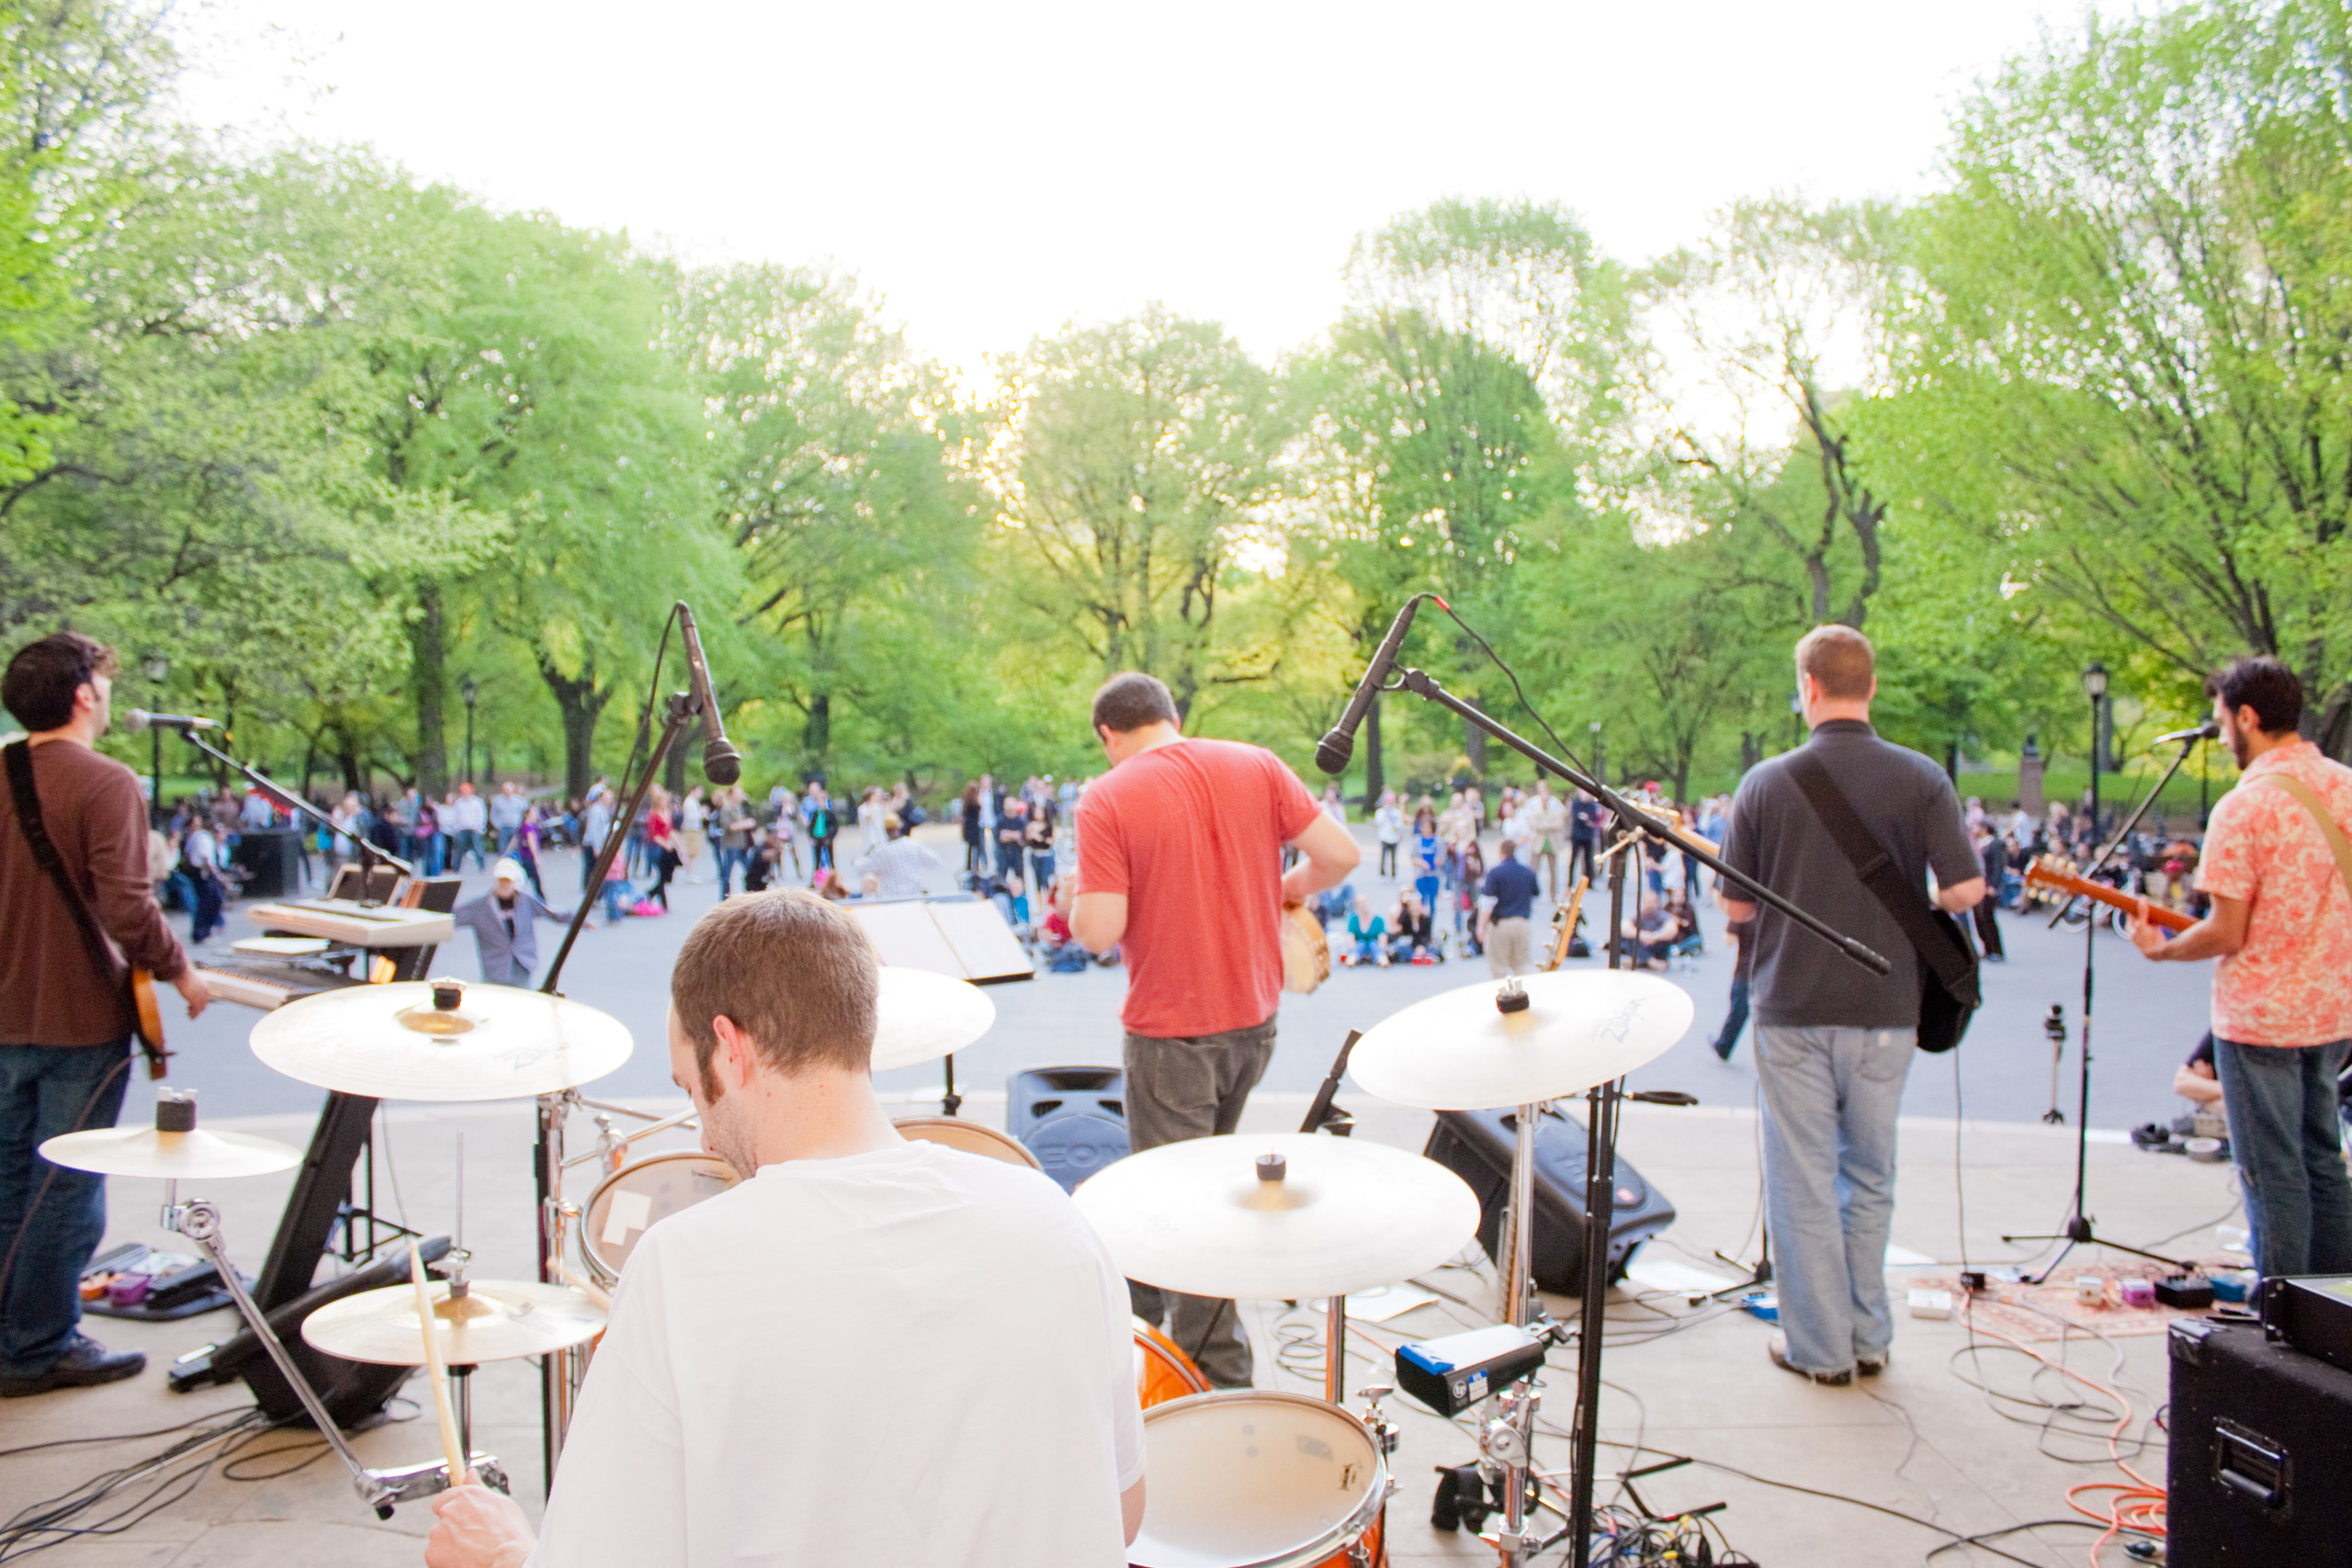 Jake And The Mountain Men live at the Naumburg Bandshell in Central Park, NYC 2009.